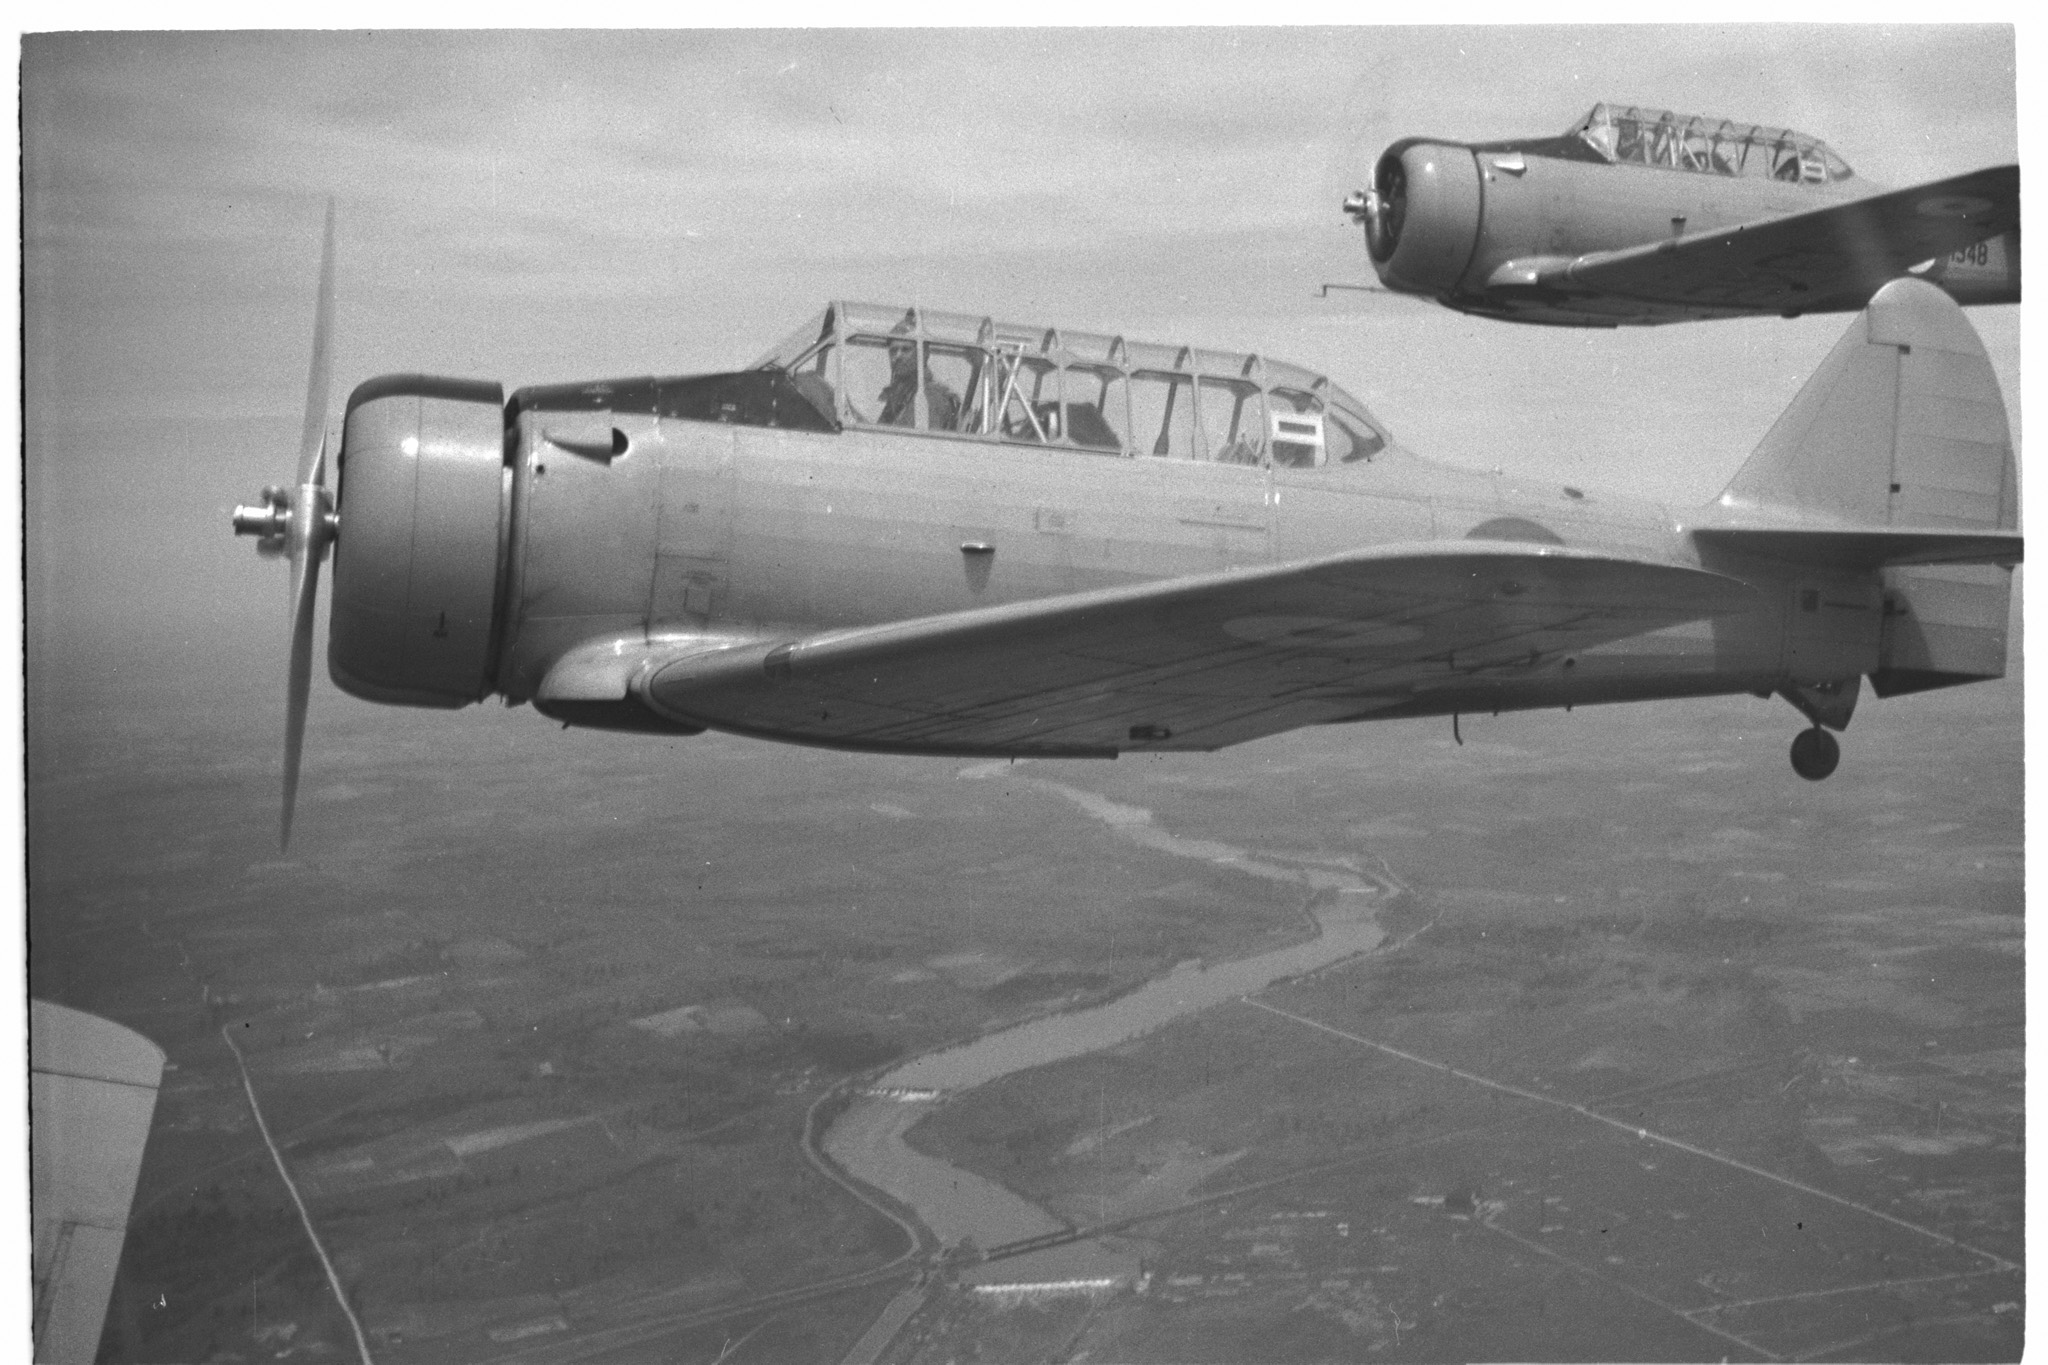 An air-to-air view of a Harvard Mk 1. PHOTO: DND Archives, PL-270